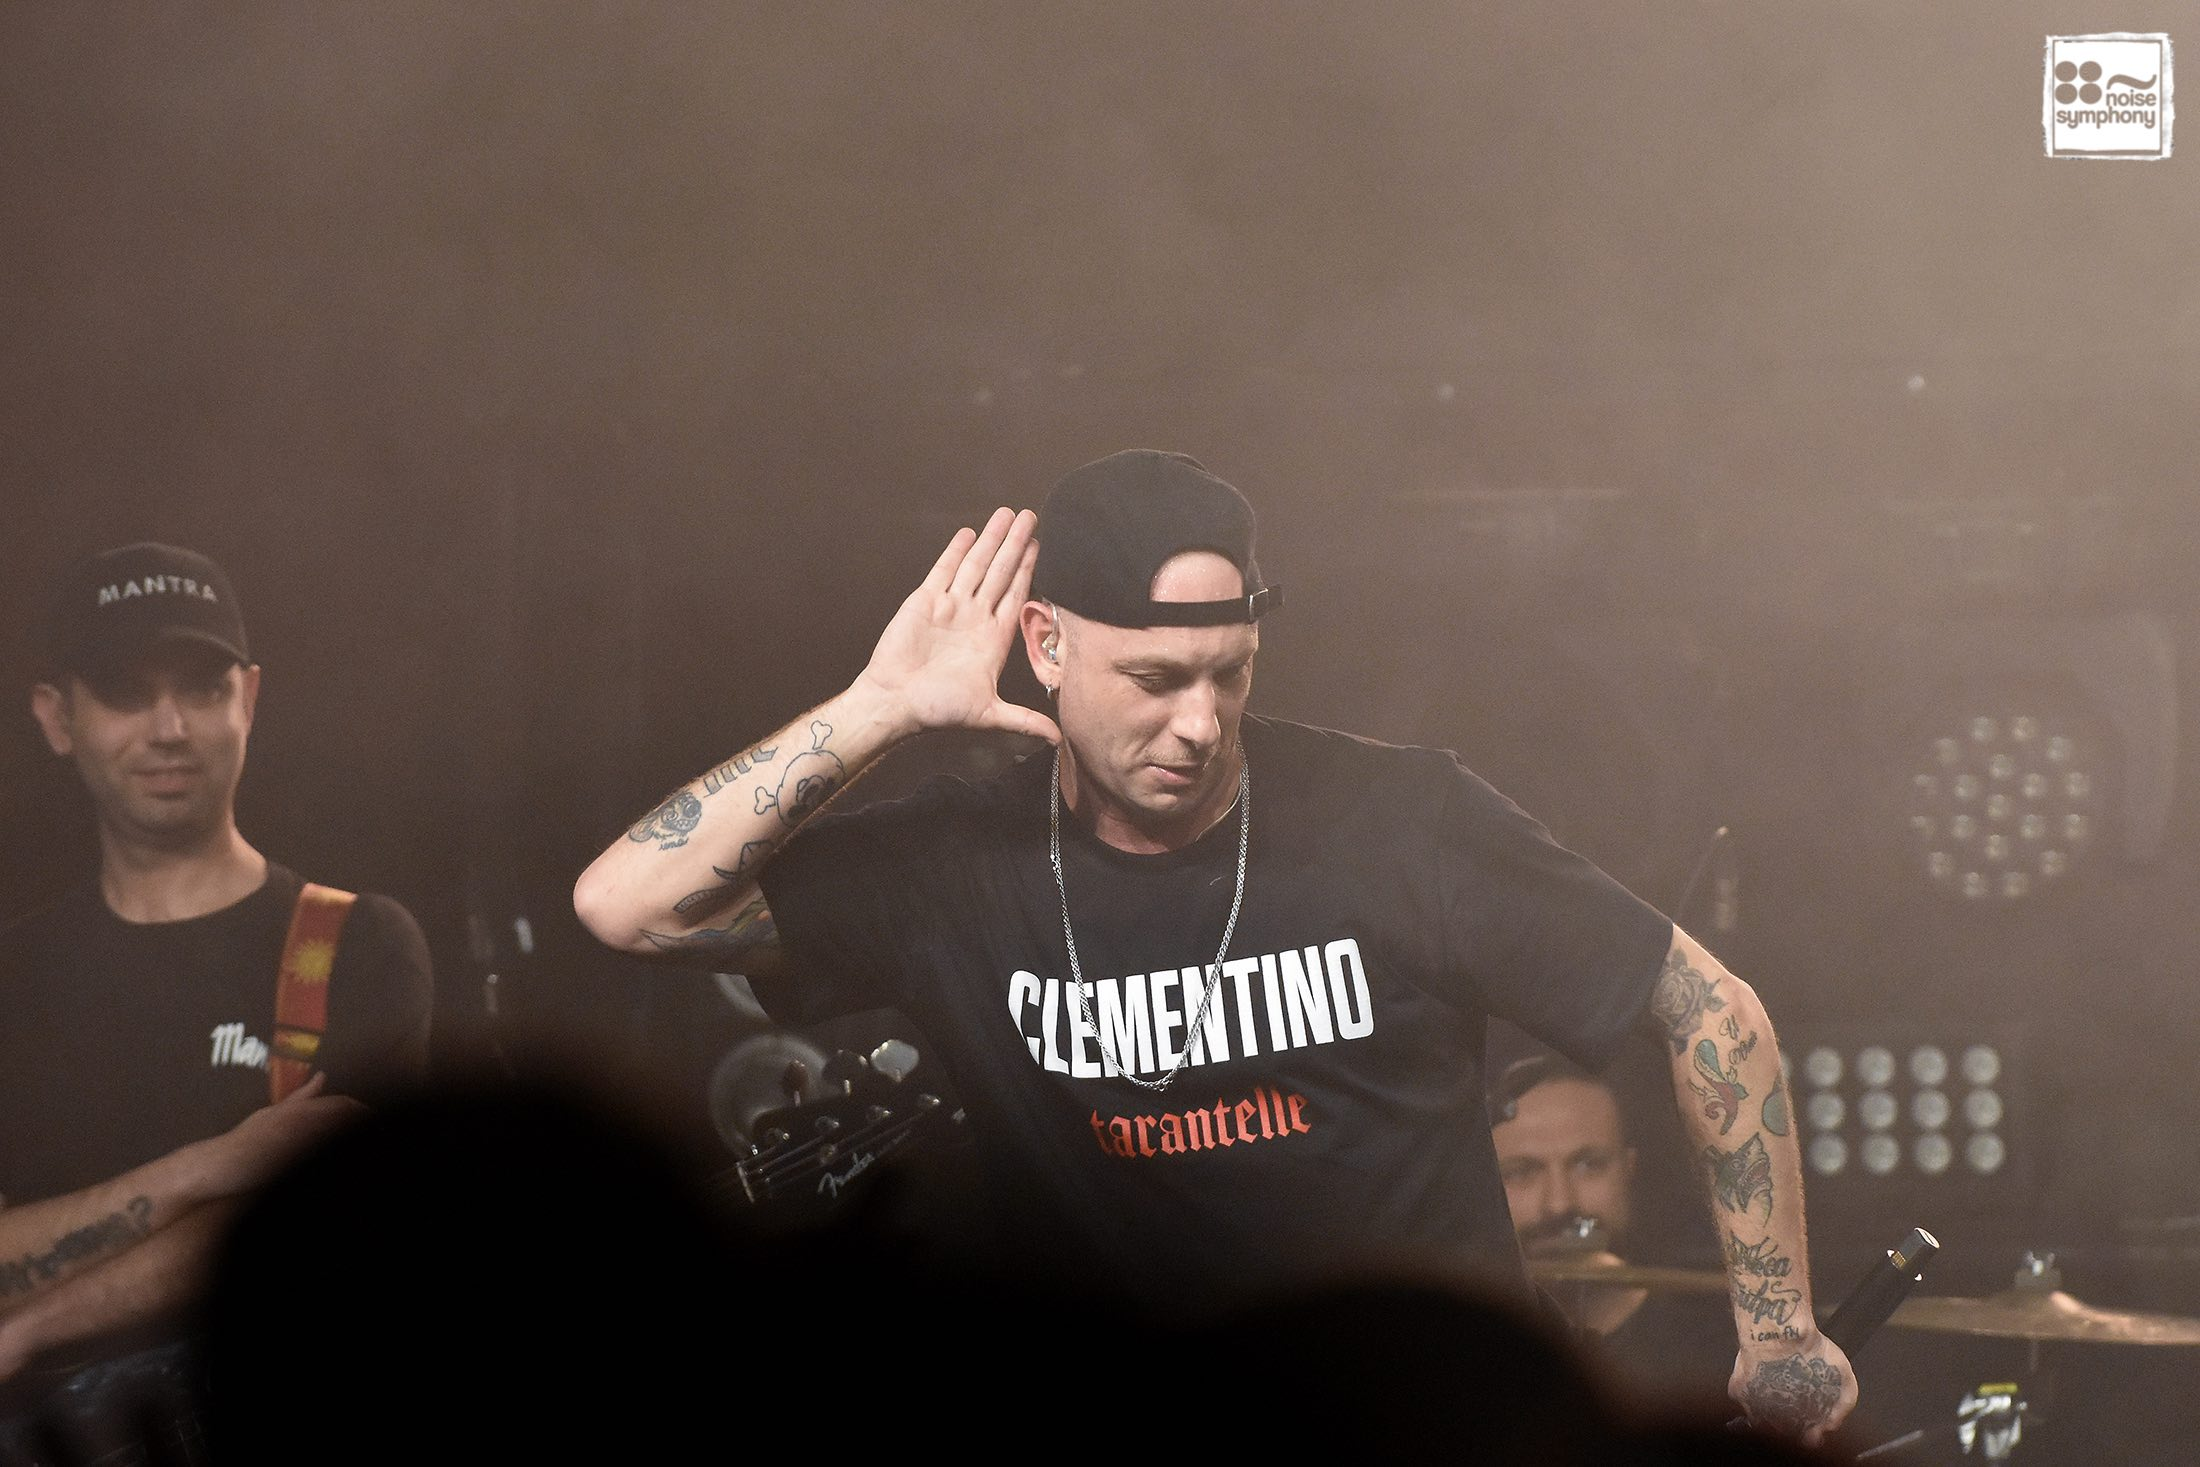 Clementino live a Roma | Photogallery